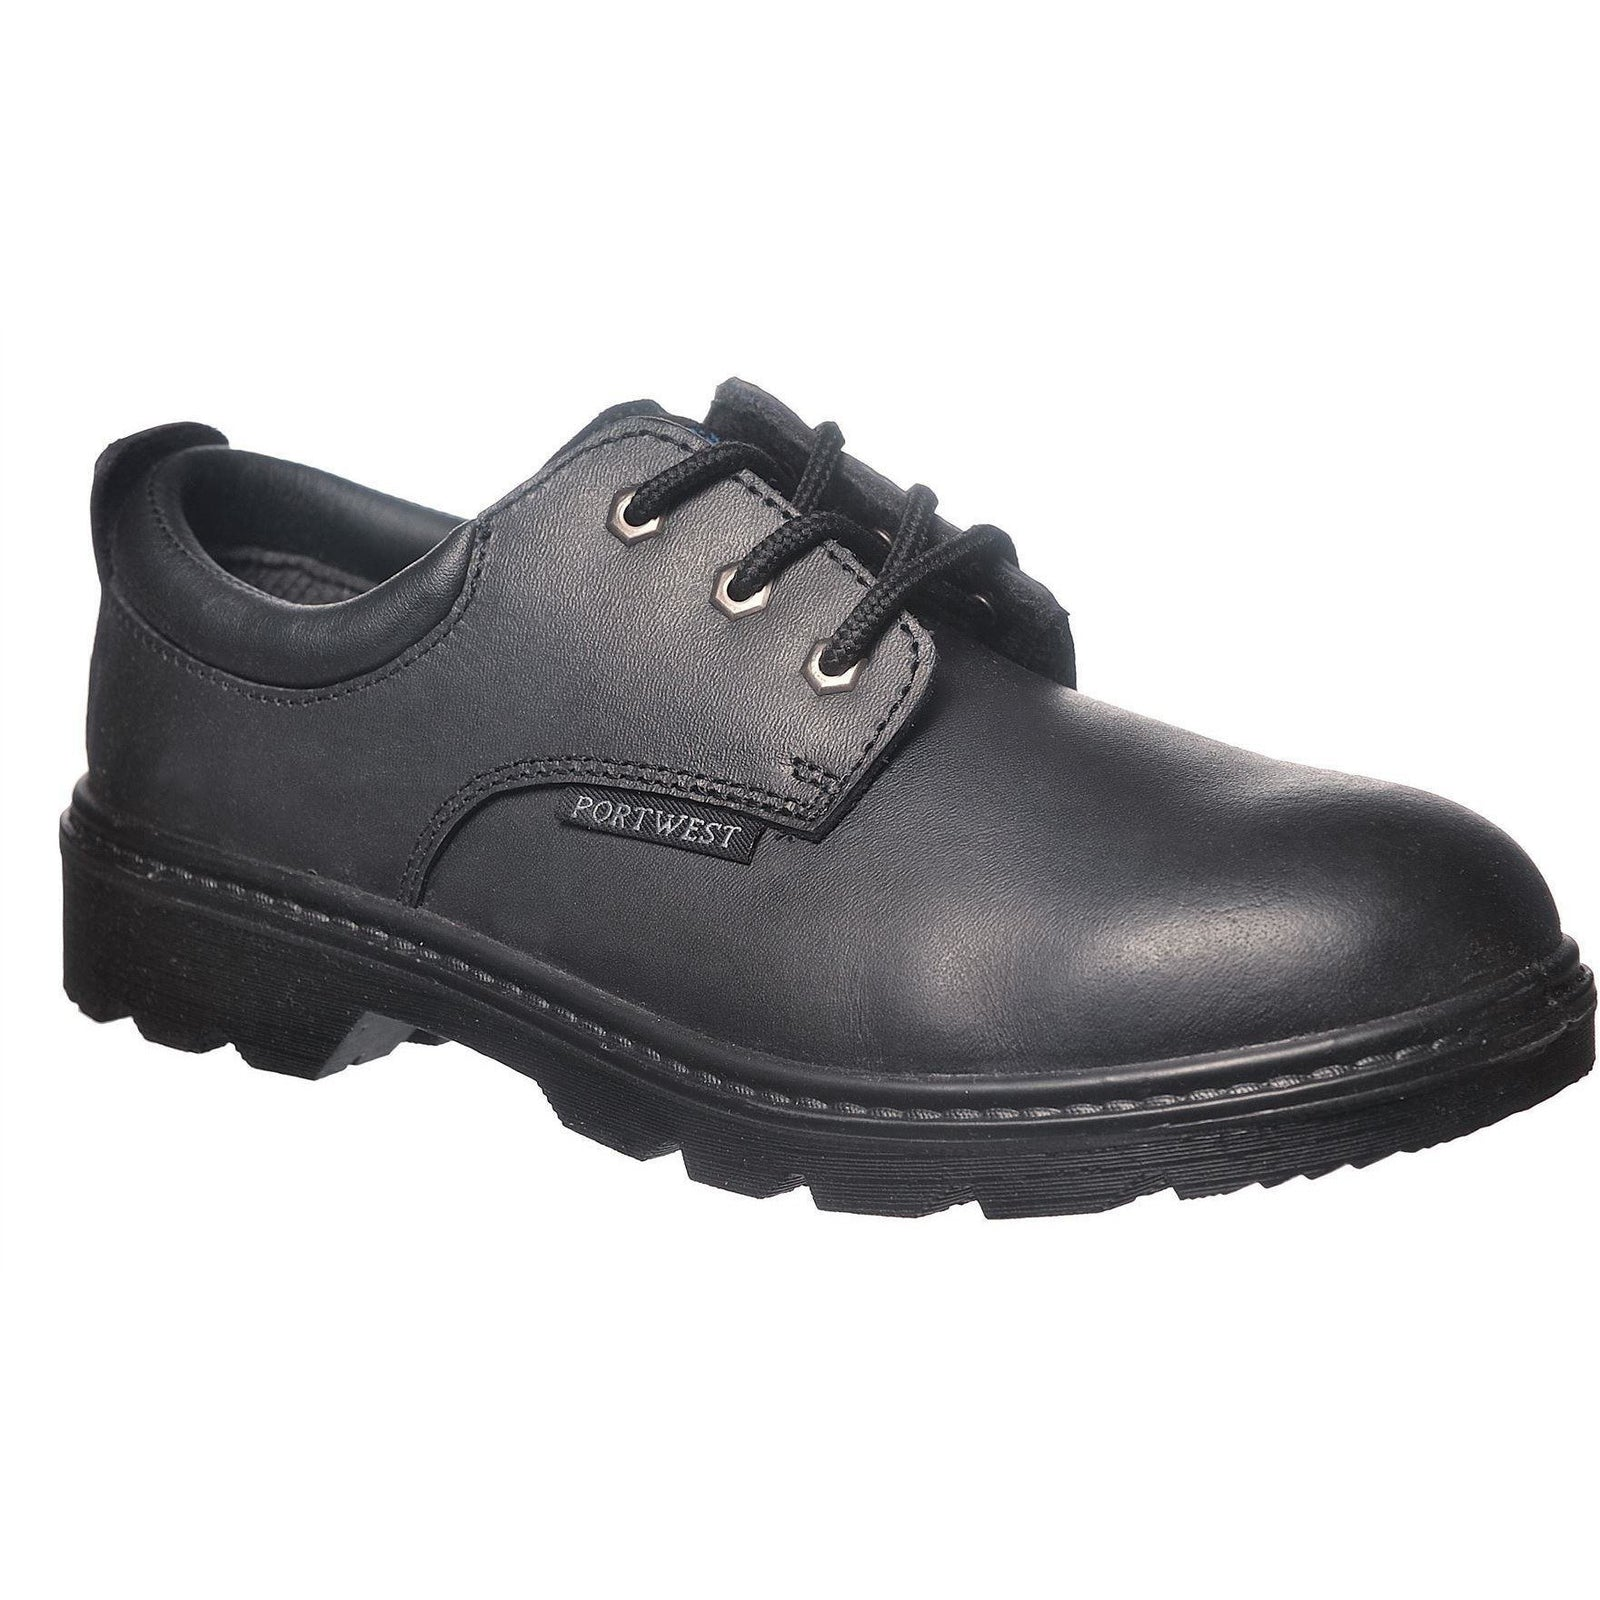 Portwest Steelite Thor Shoe S3 FW44 - reid outdoors